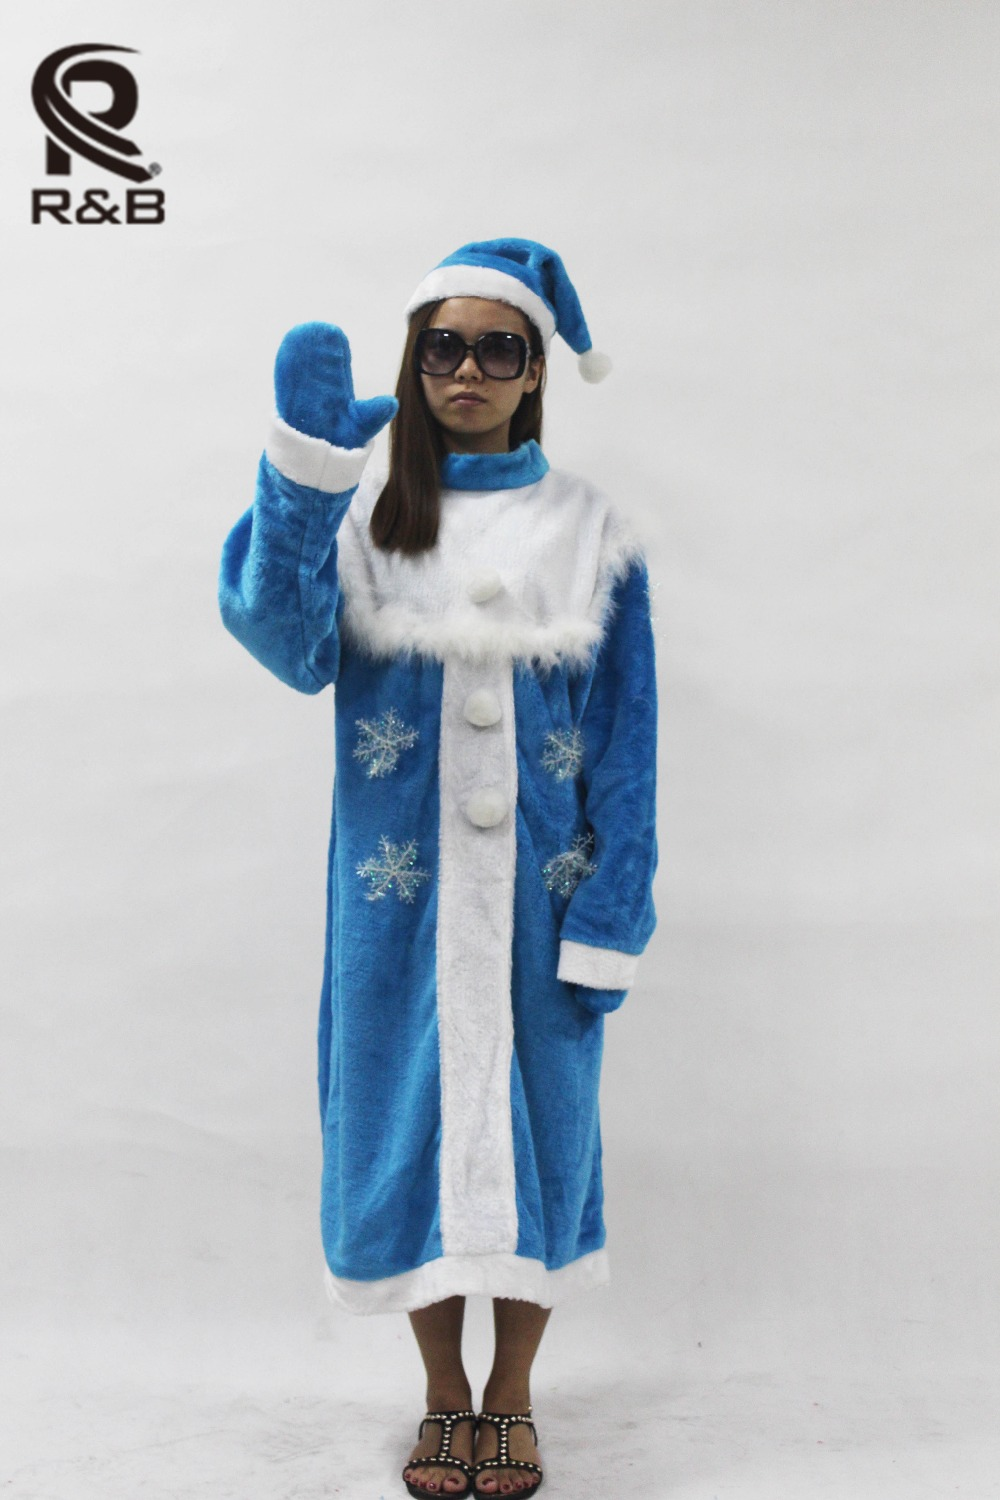 Hot Sale Women Christmas Santa Claus Costume Funny Dress Suit Cosplay Dress Xmas Costume For Adult(China (Mainland))